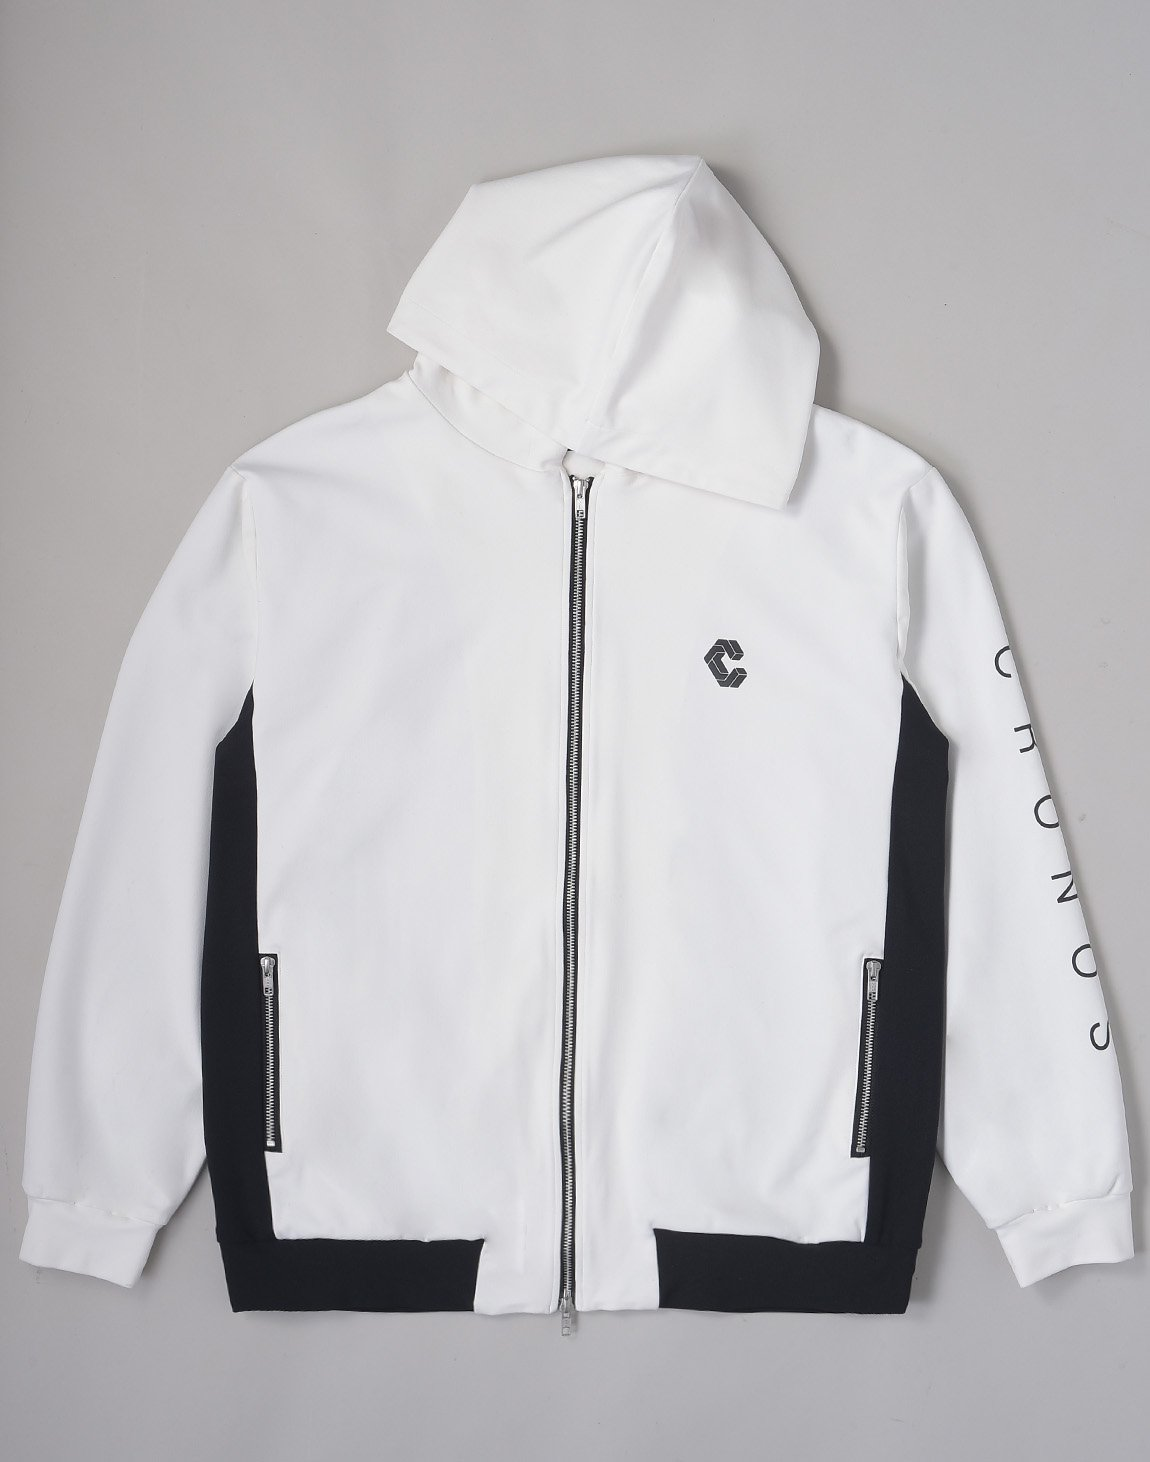 <img class='new_mark_img1' src='https://img.shop-pro.jp/img/new/icons1.gif' style='border:none;display:inline;margin:0px;padding:0px;width:auto;' />CRONOS ARM LOGO HOODED BLOUSON【WHITE】